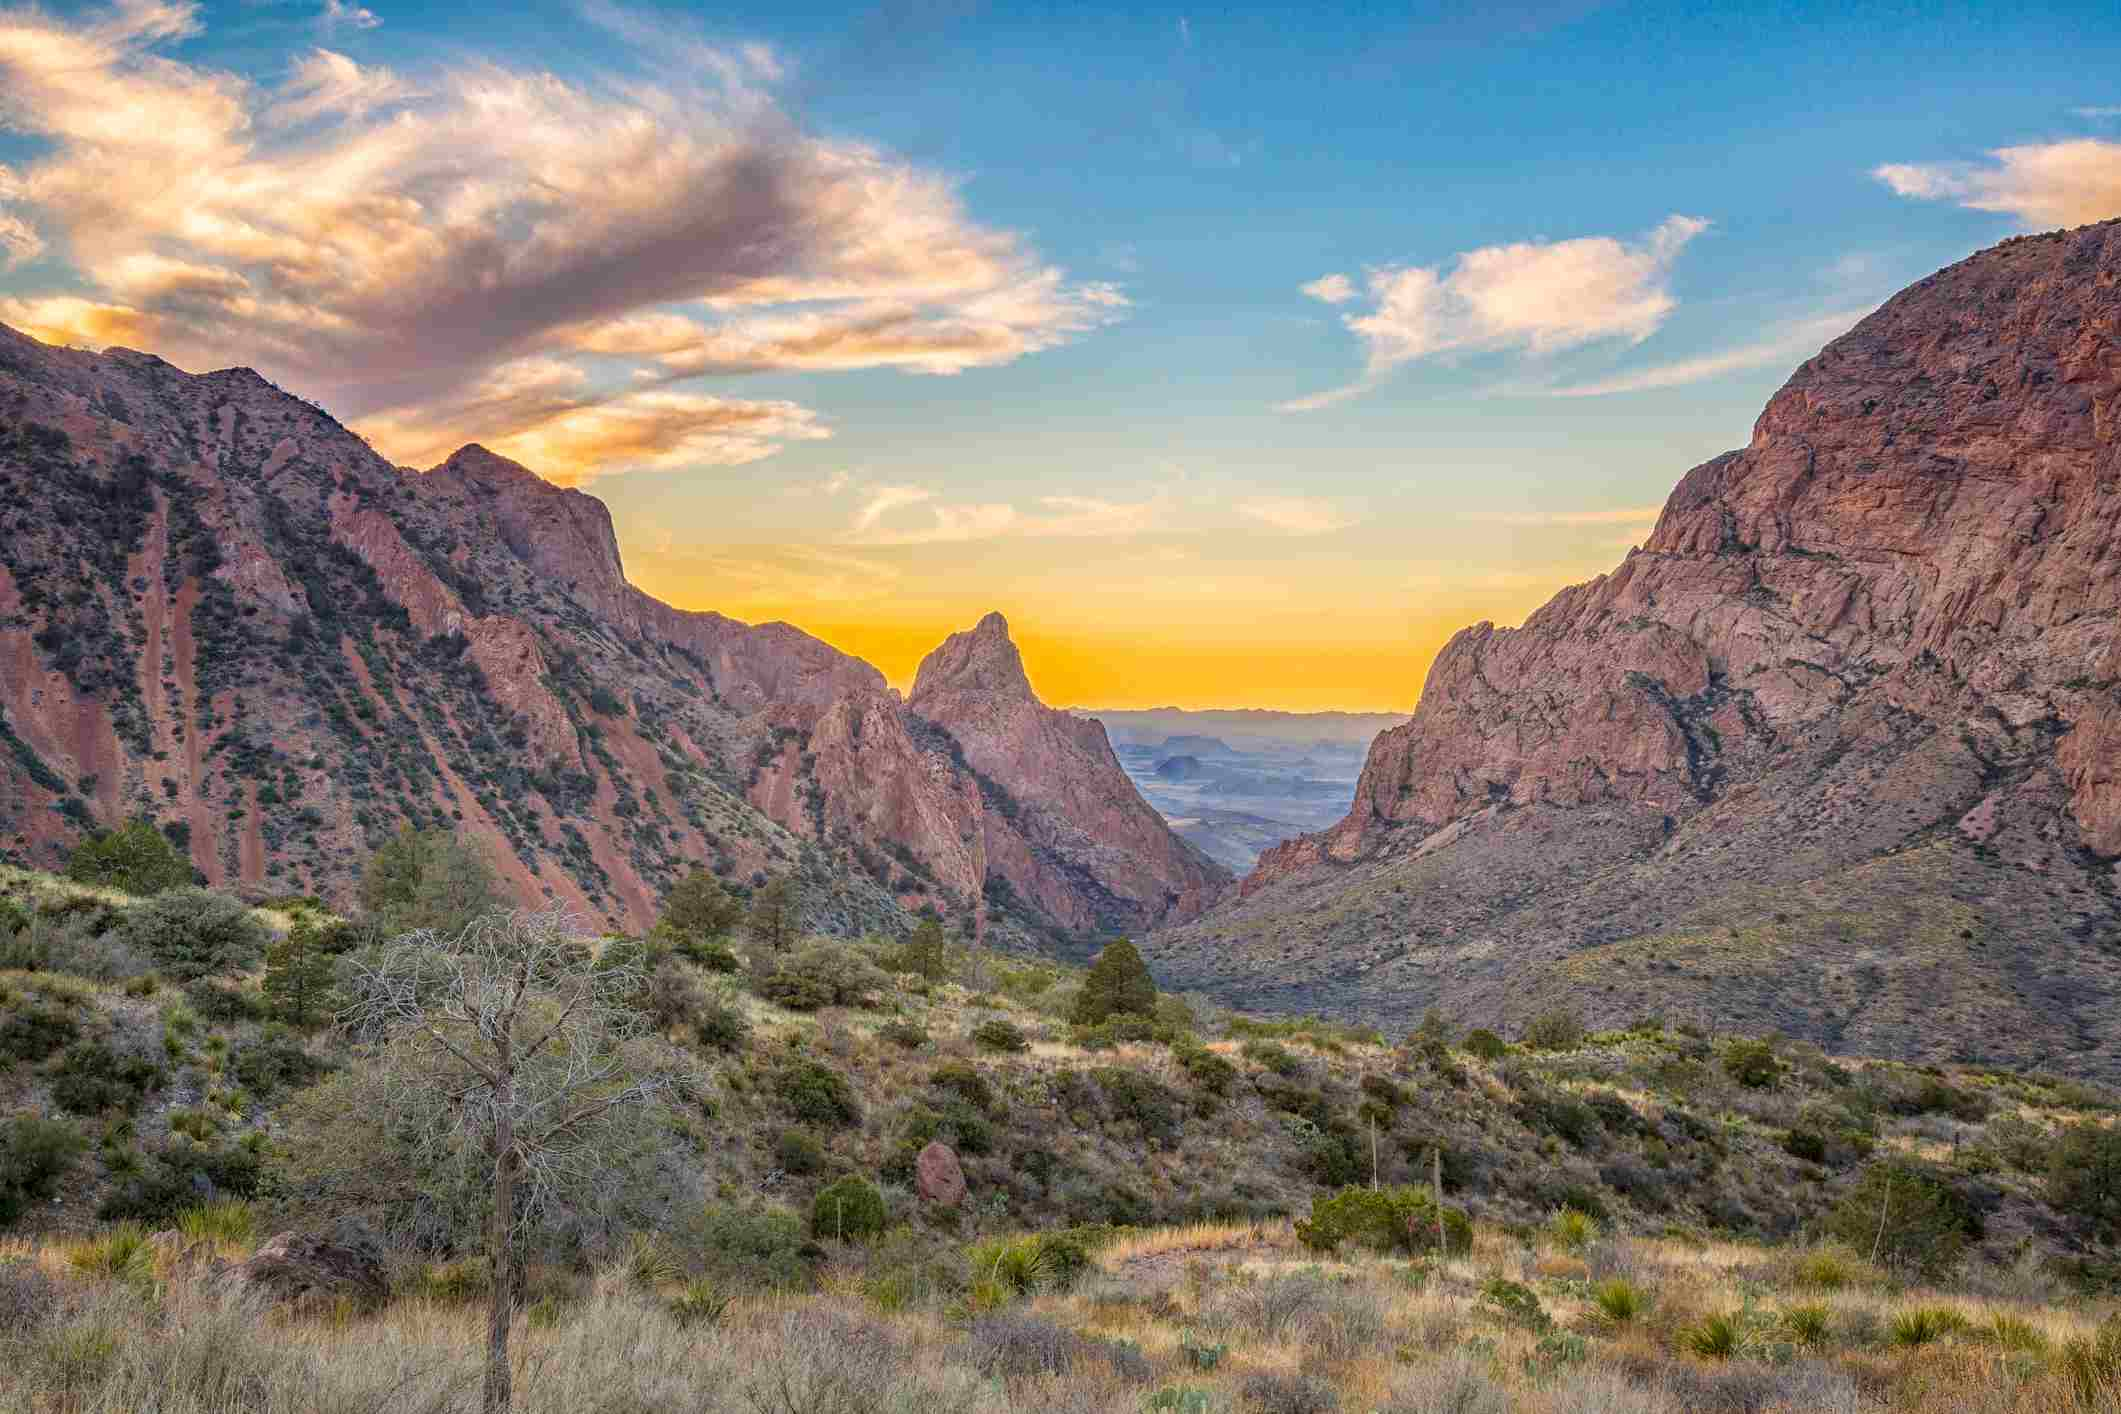 One Day in Big Bend National Park, Texas